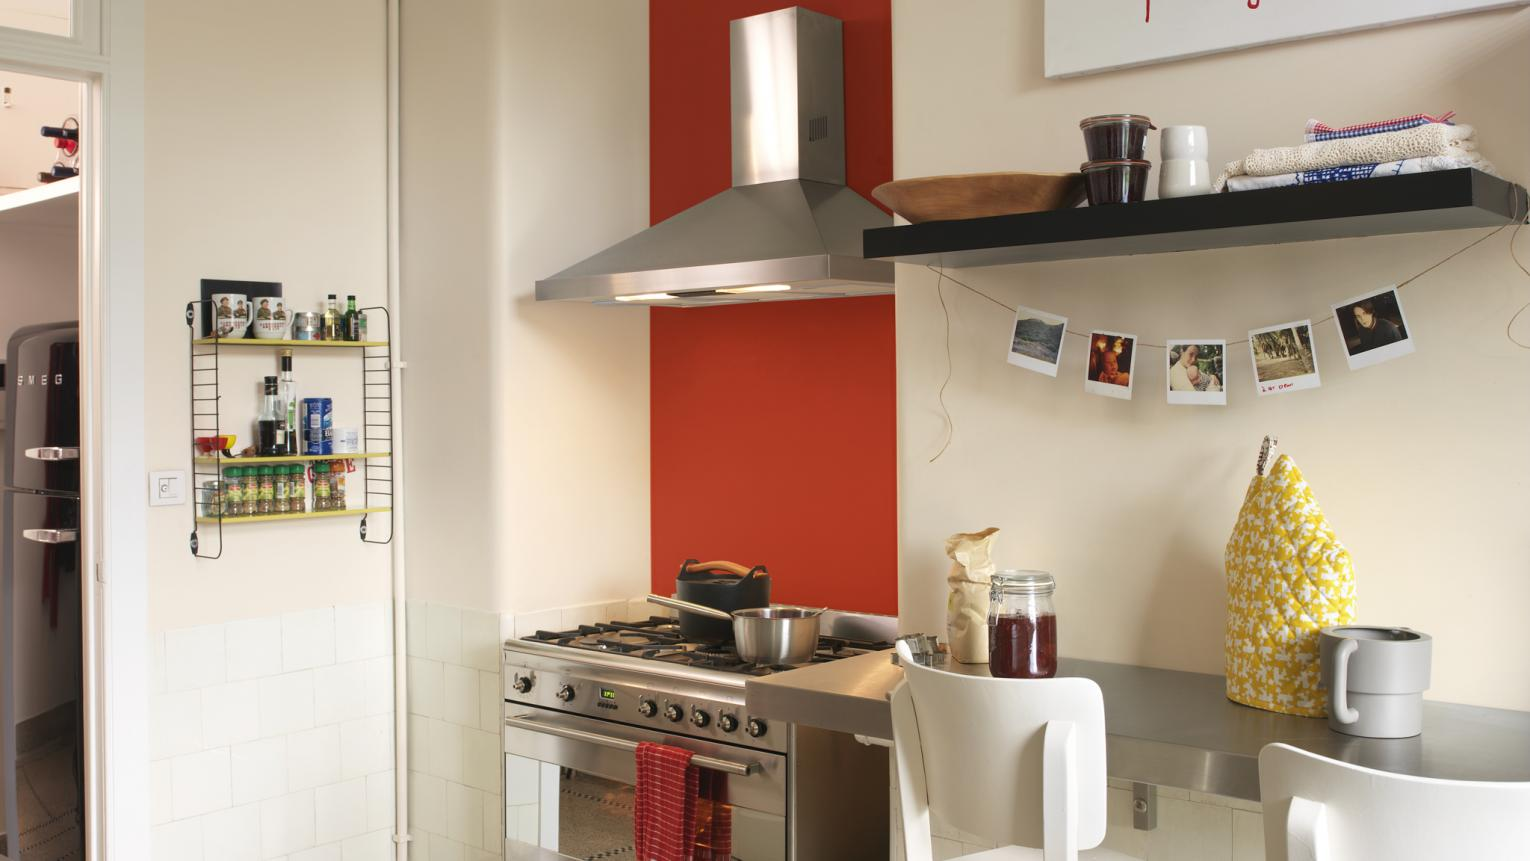 Use a bright standpoint colour to add energy to a plain kitchen.